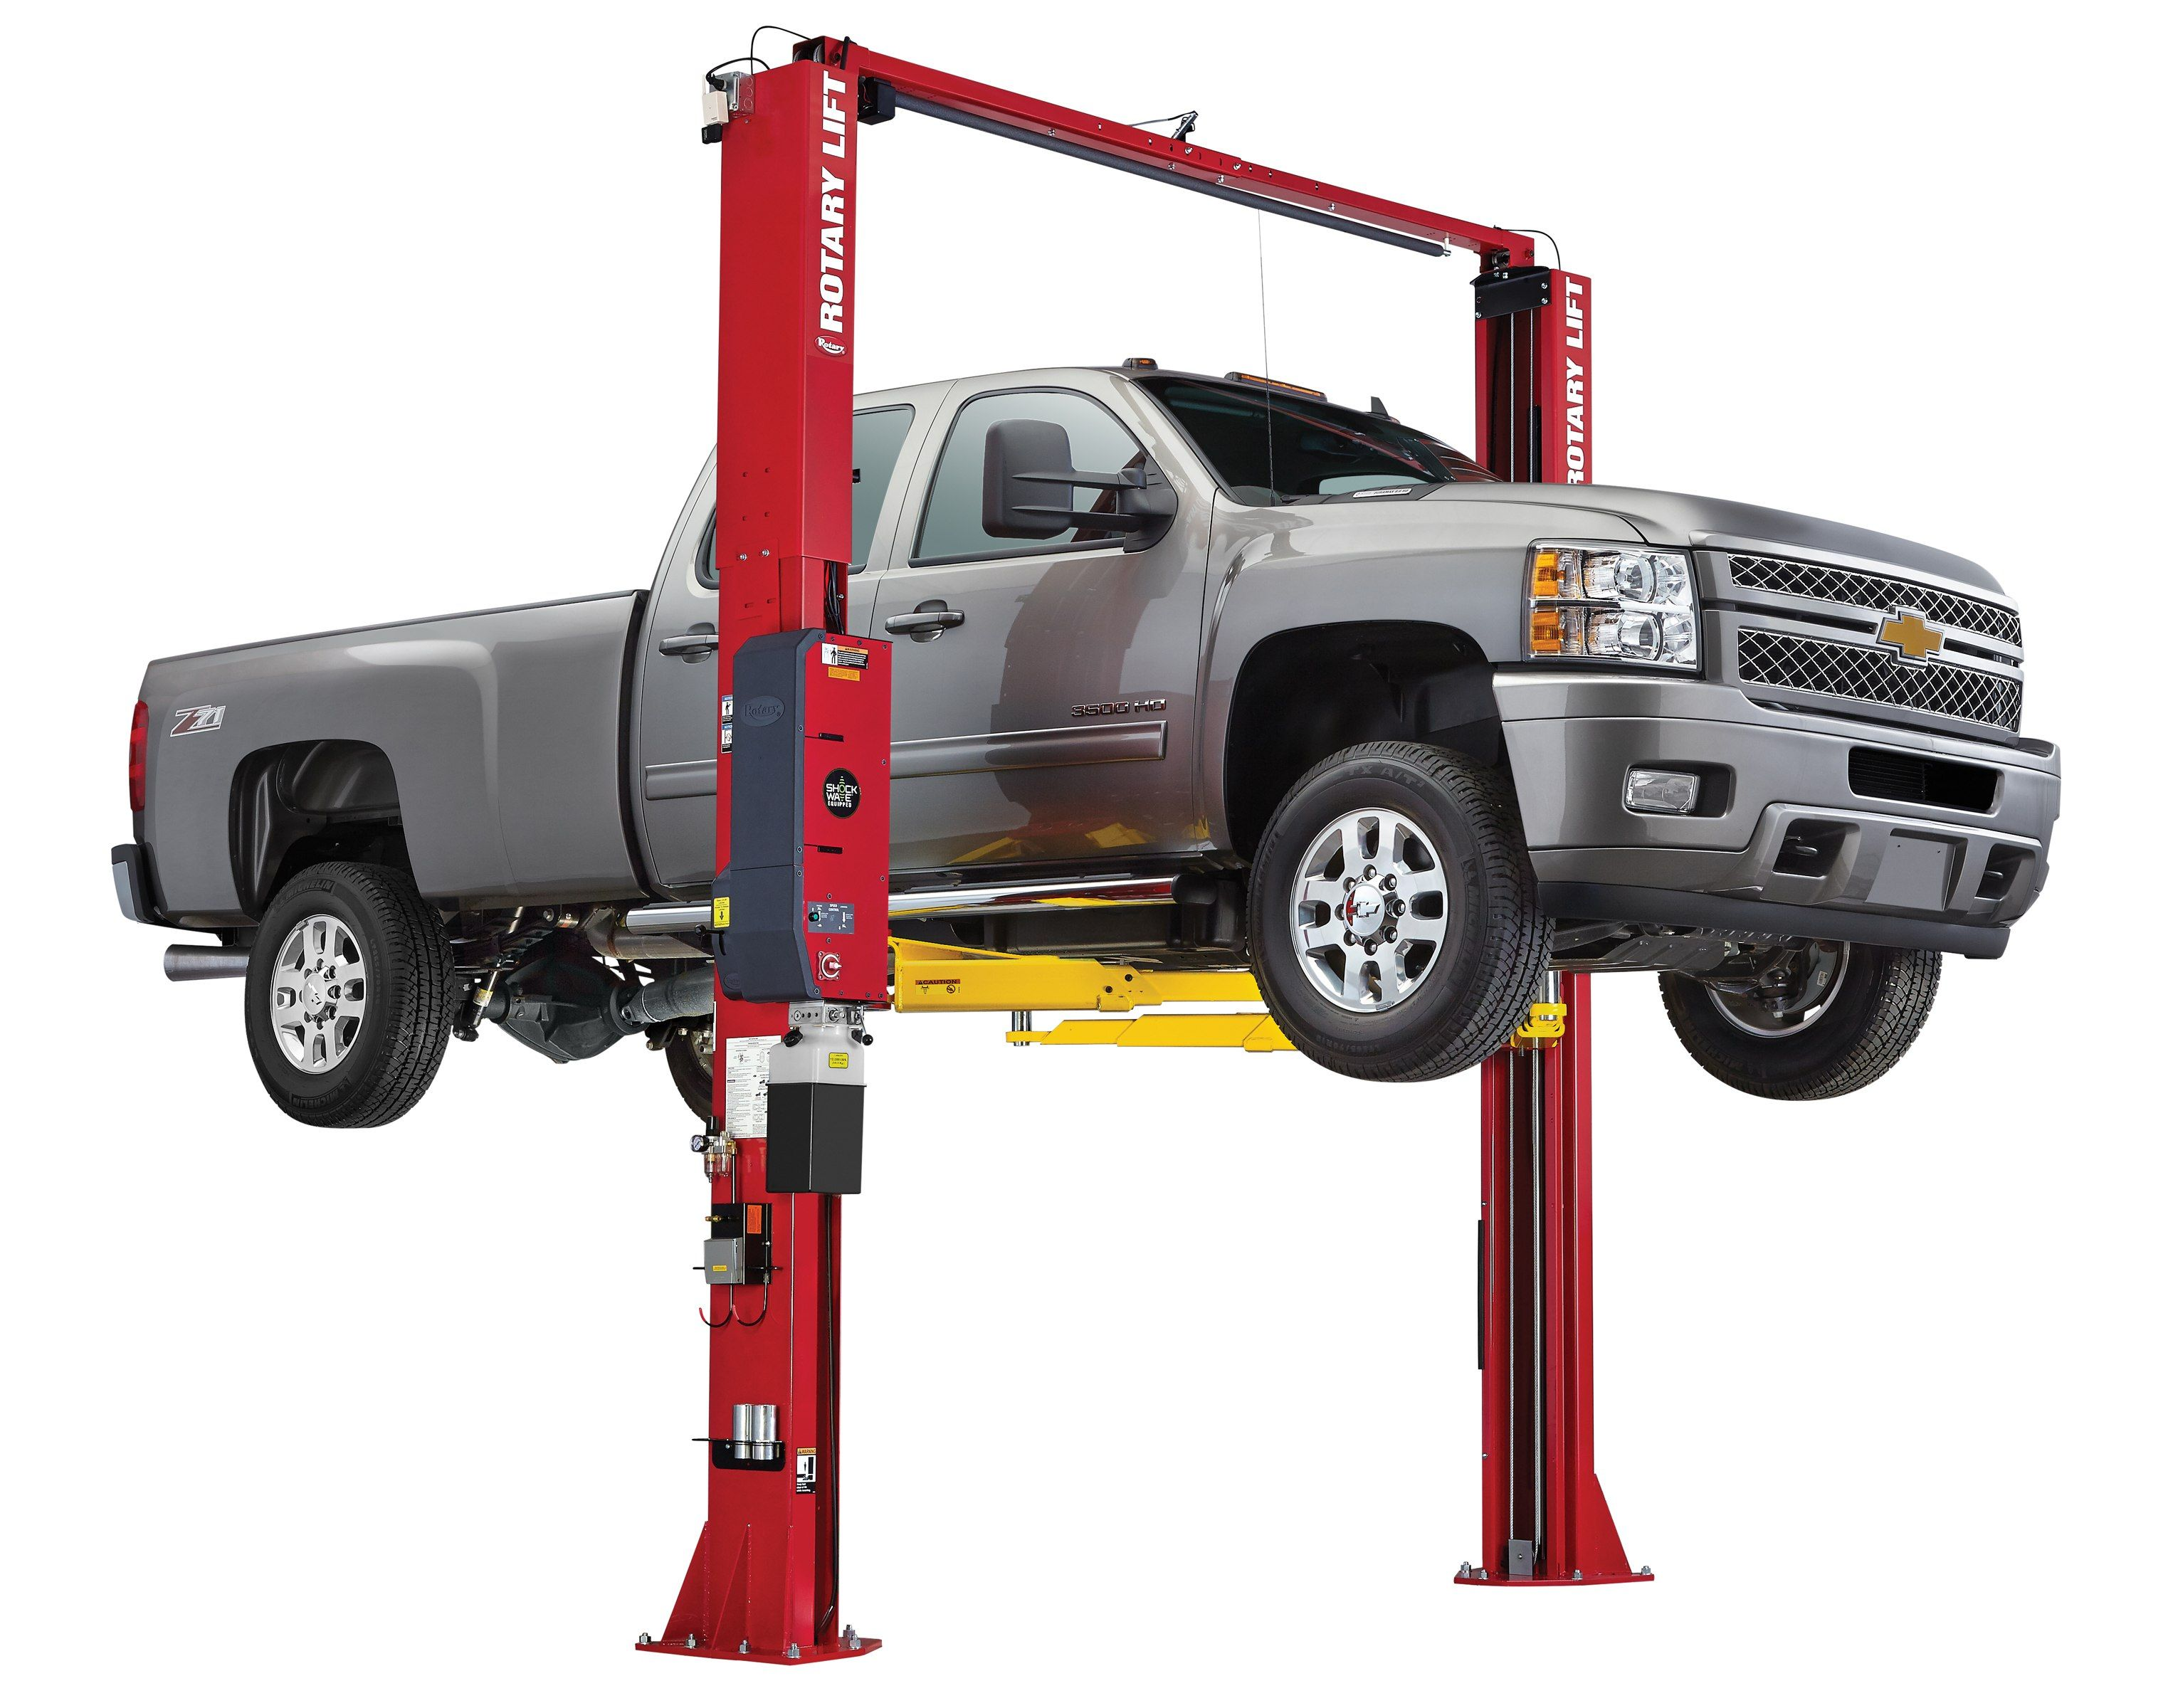 Rotary Lift's Shockwave Technology Speeds Up Repairs